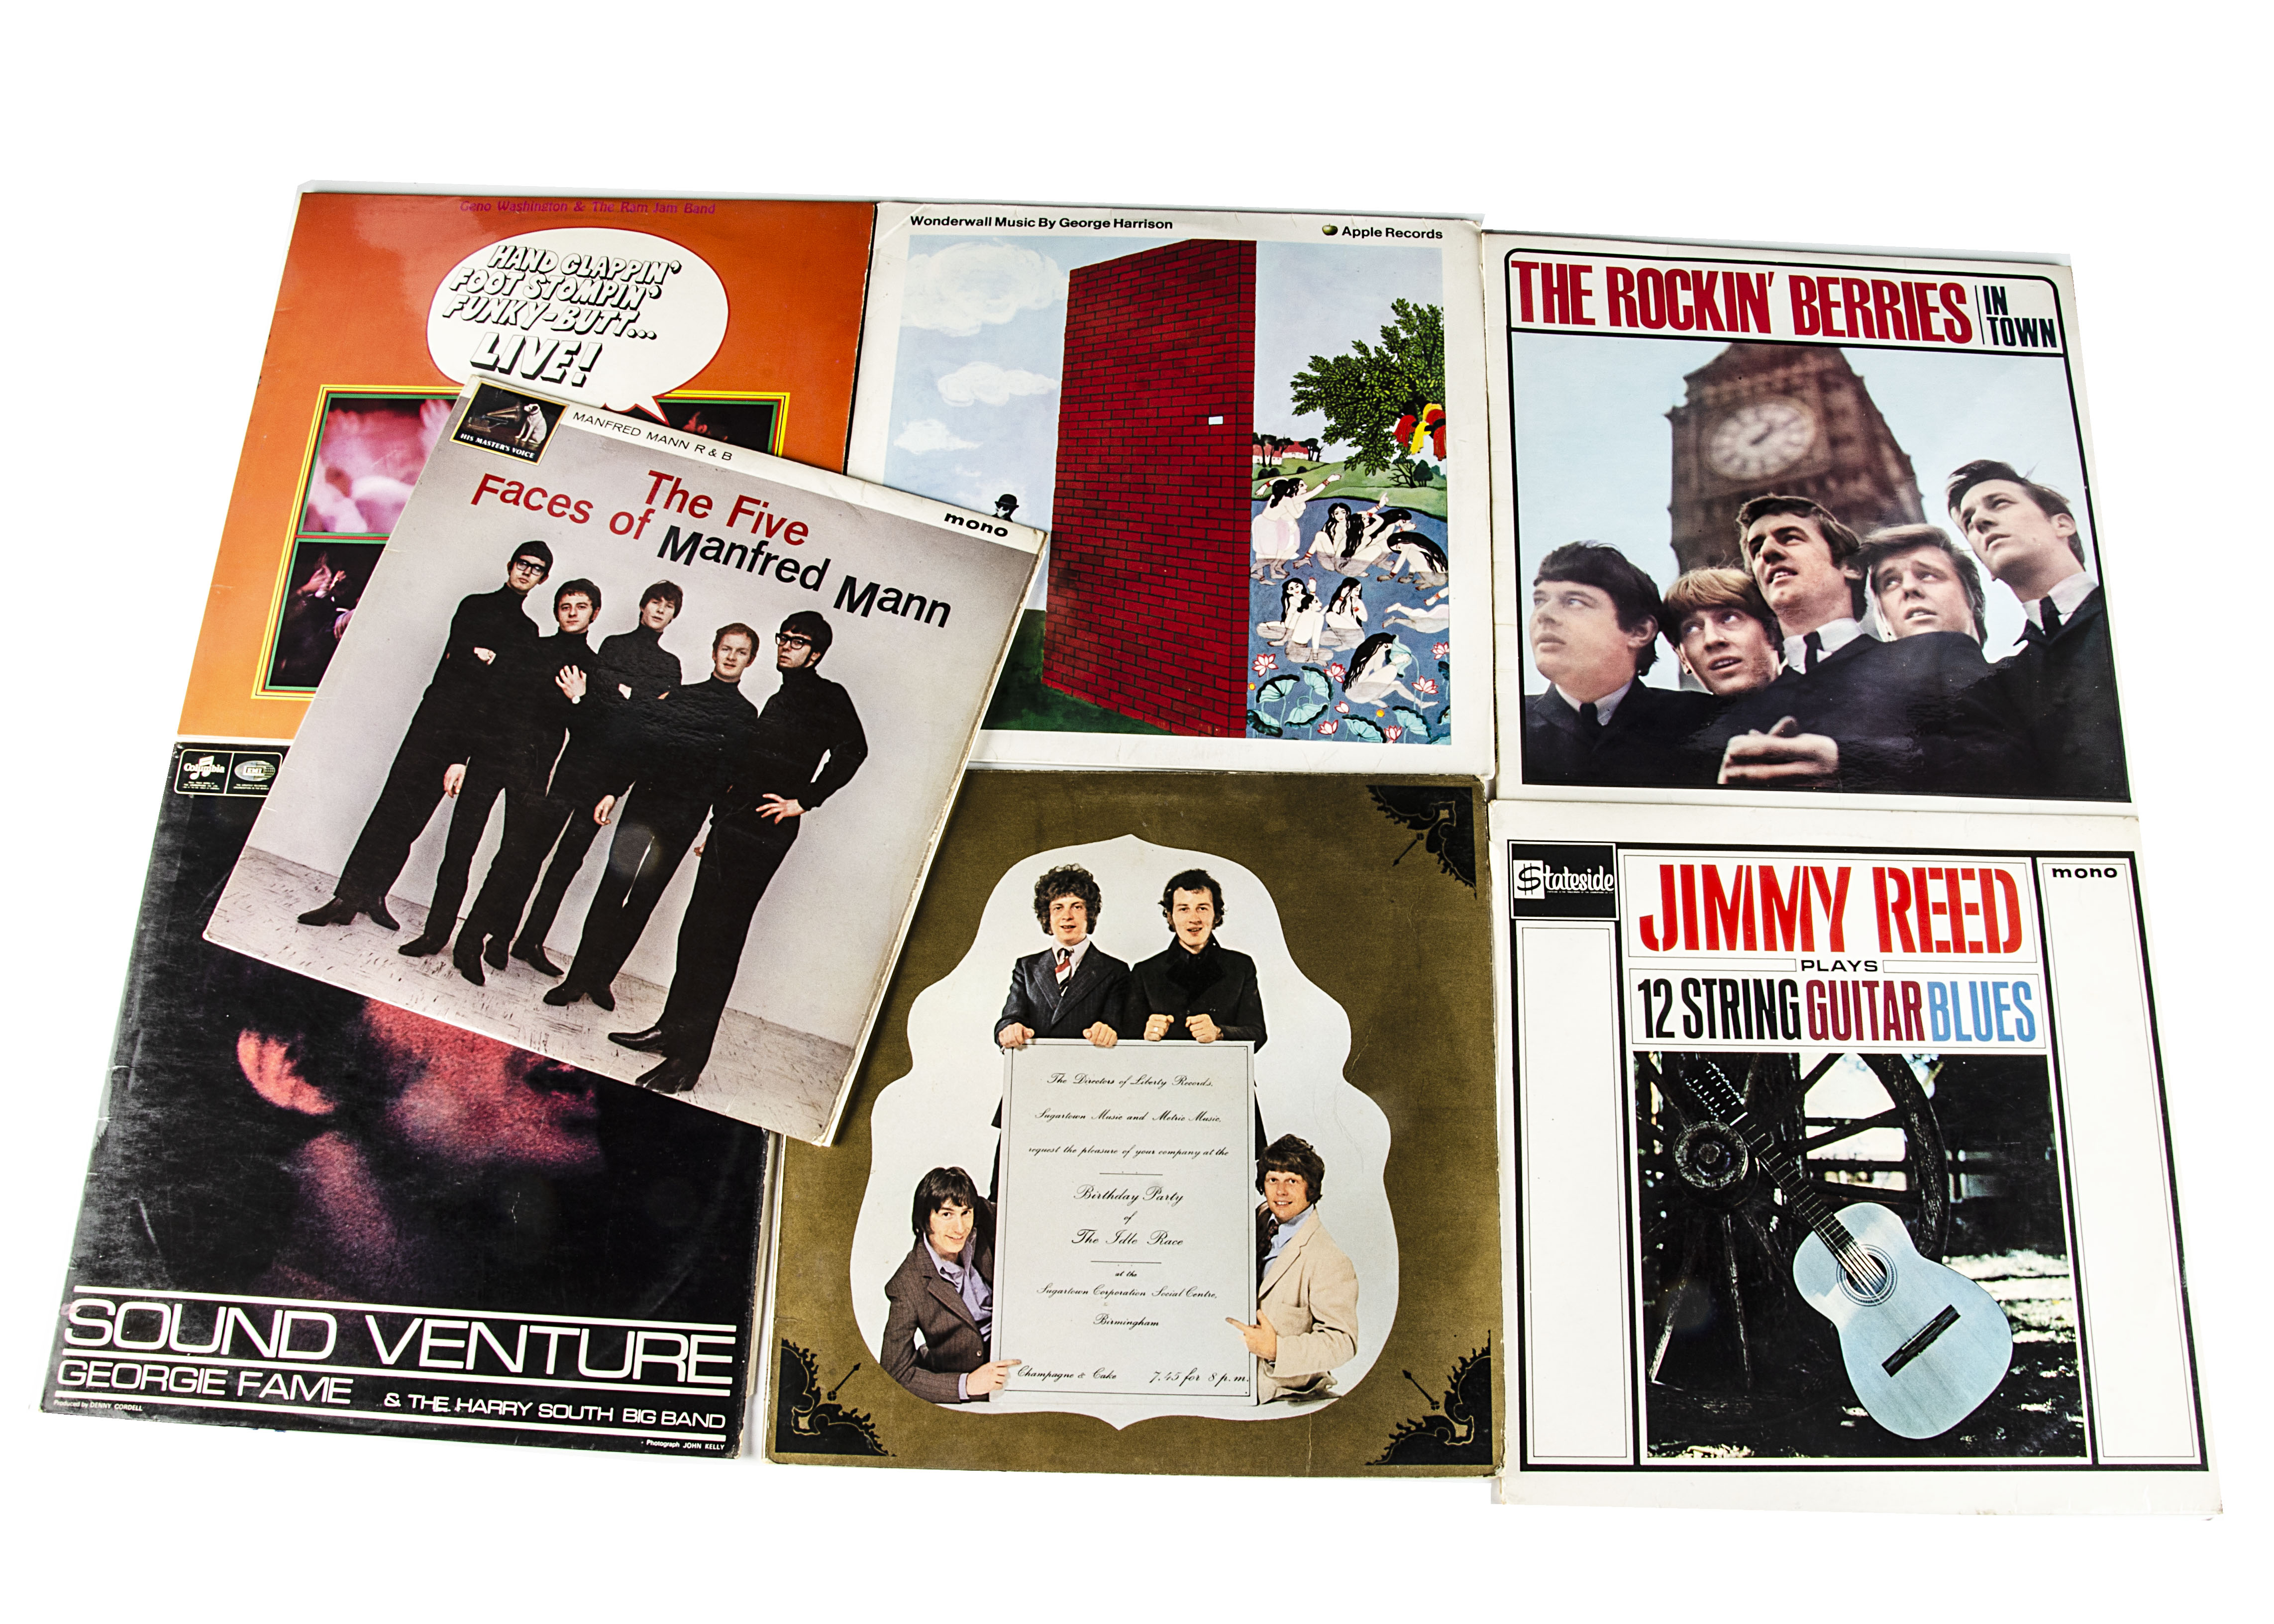 Sixties LPs, seven albums comprising George Harrison - Wonderwall Music (German Stereo with